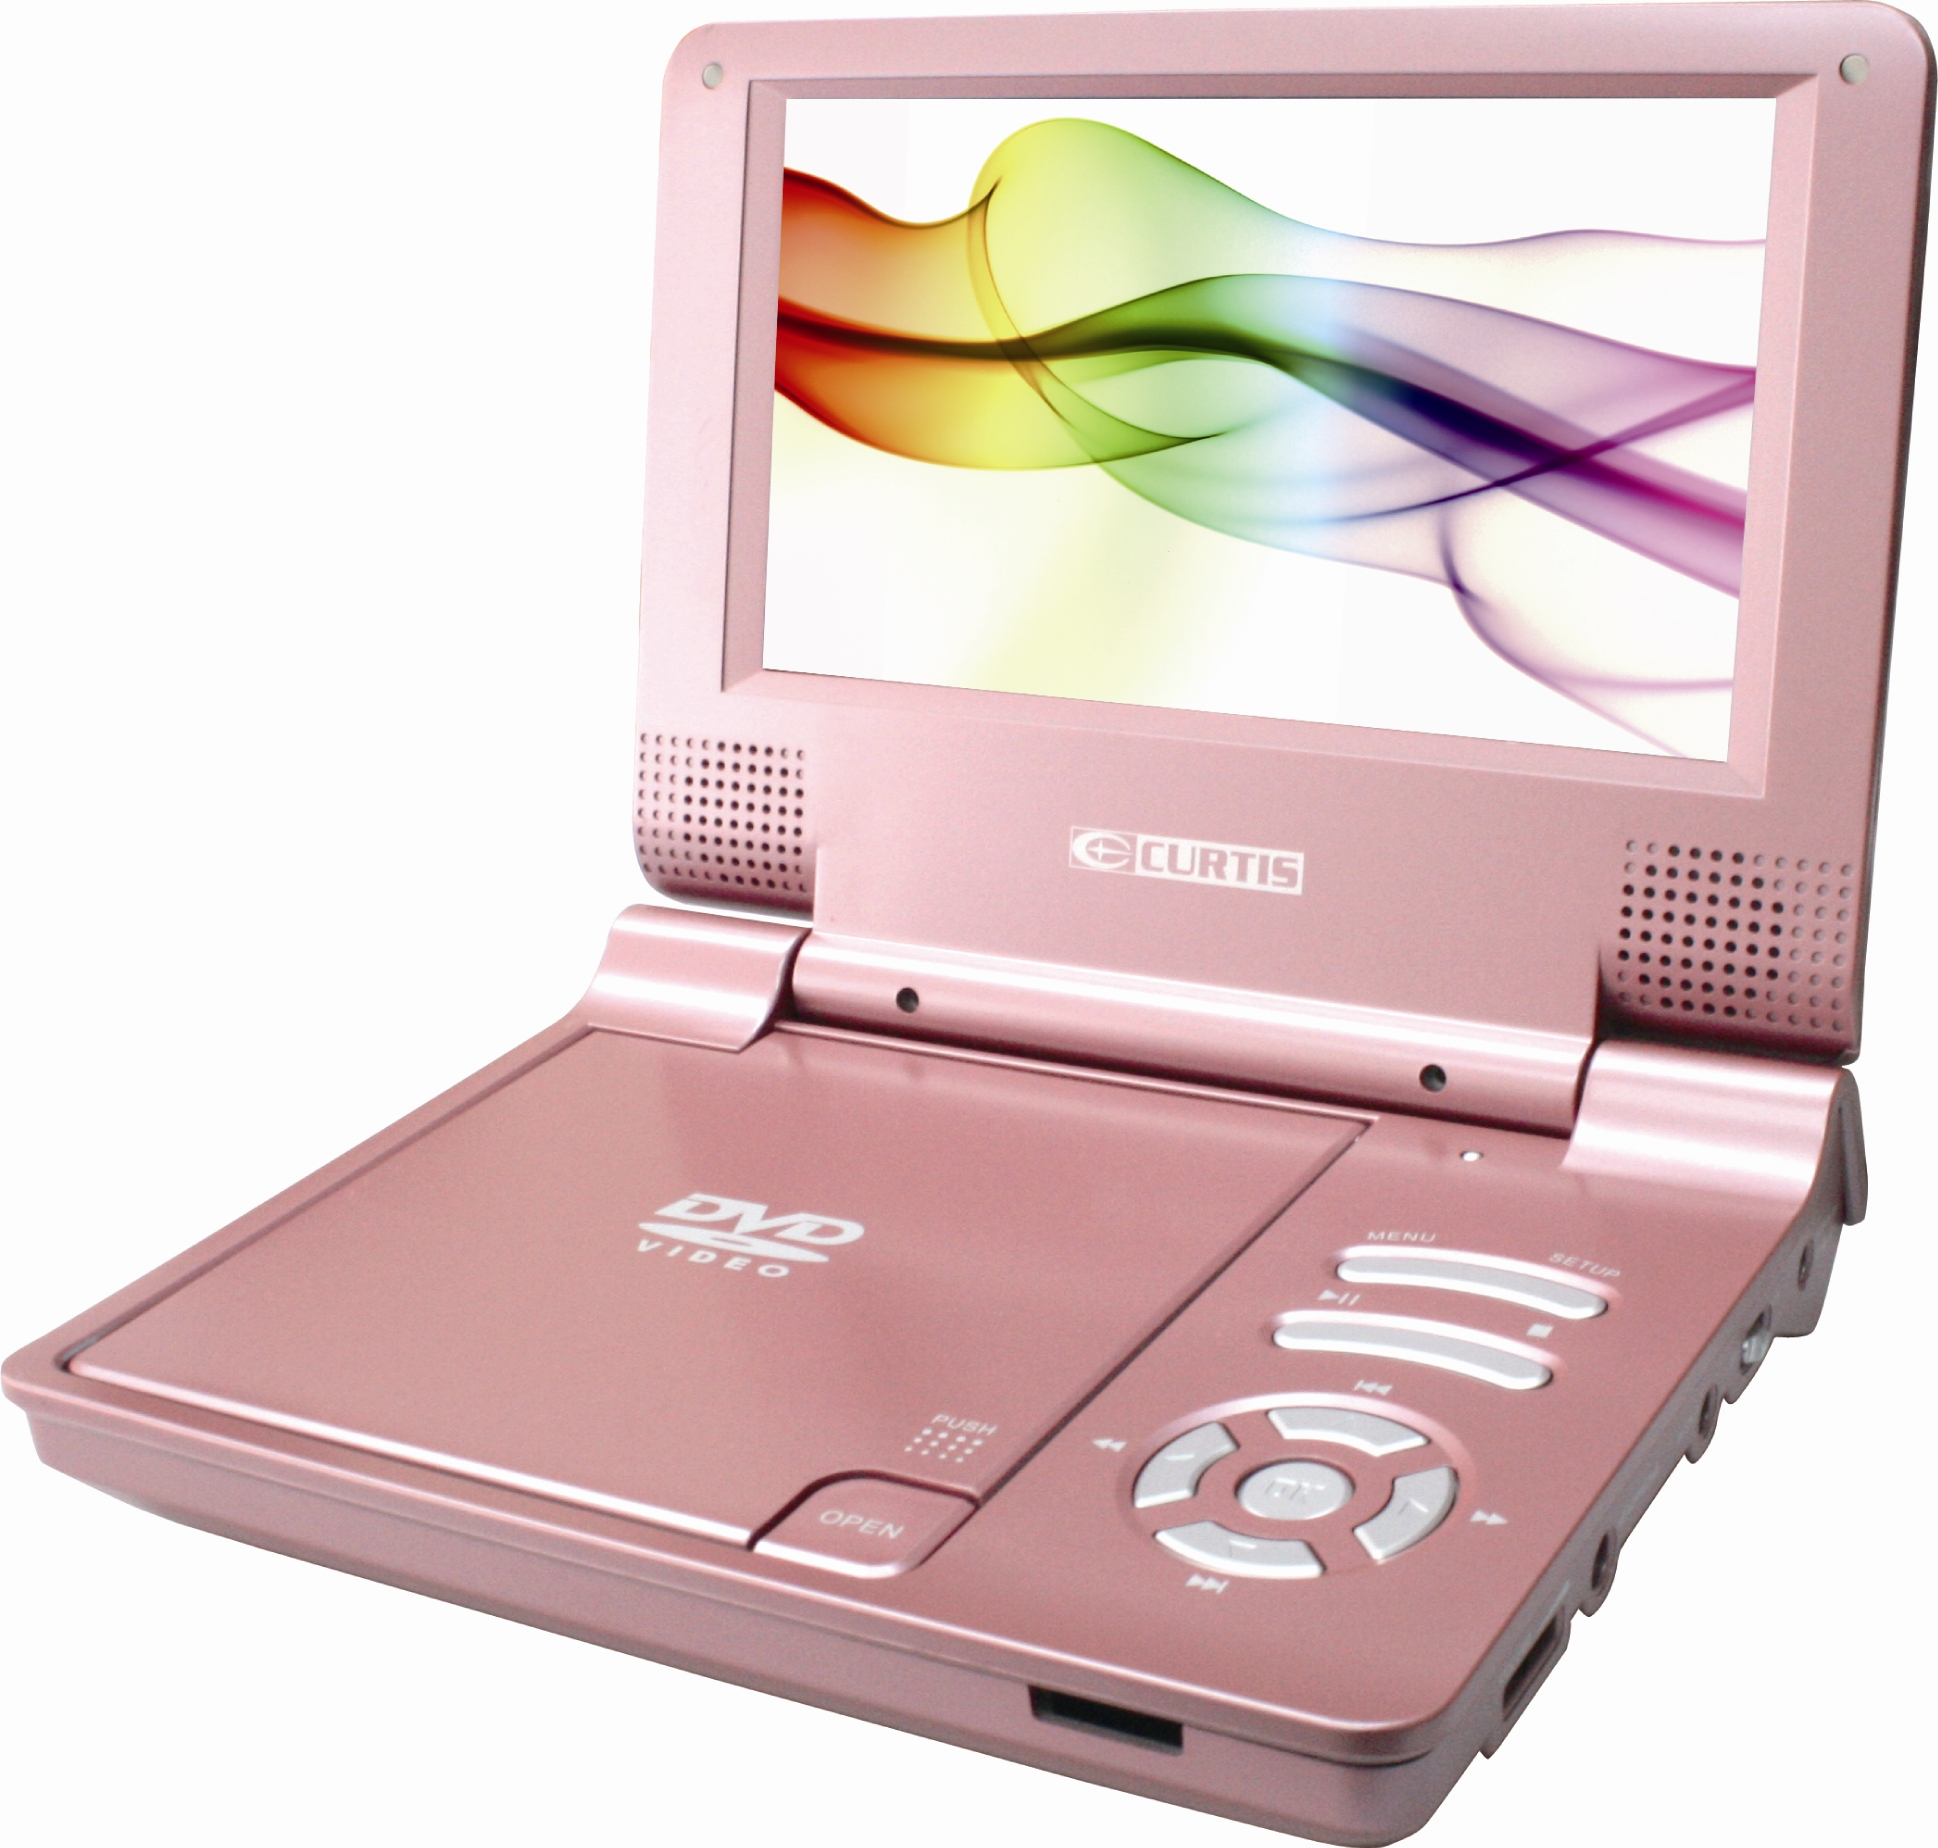 "CURTIS DVD7014, 7"" Portable DVD Player (Pink)"